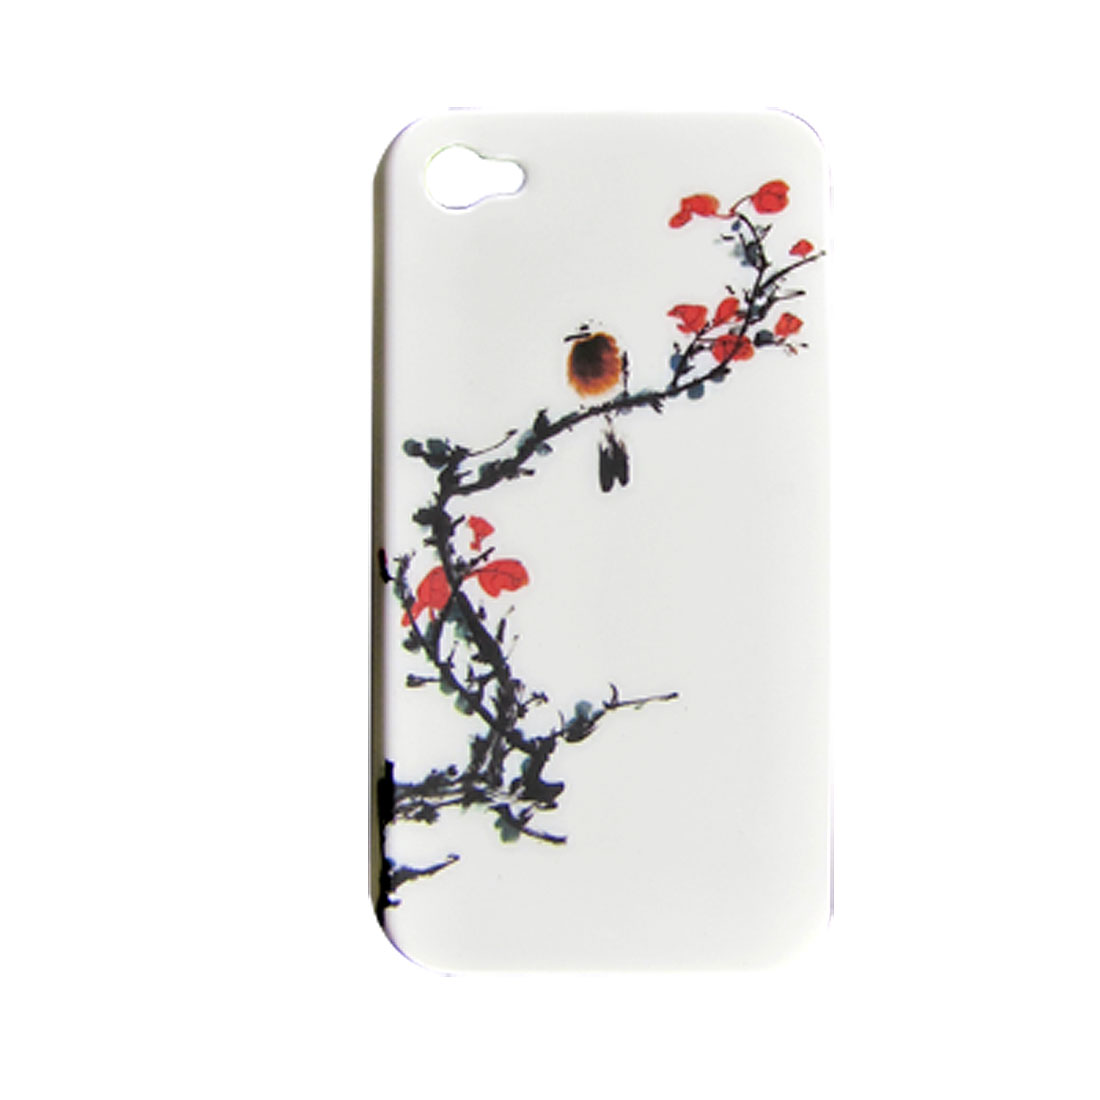 Red Plum Blossom Design White Hard Back Shell for iPhone 4 4G